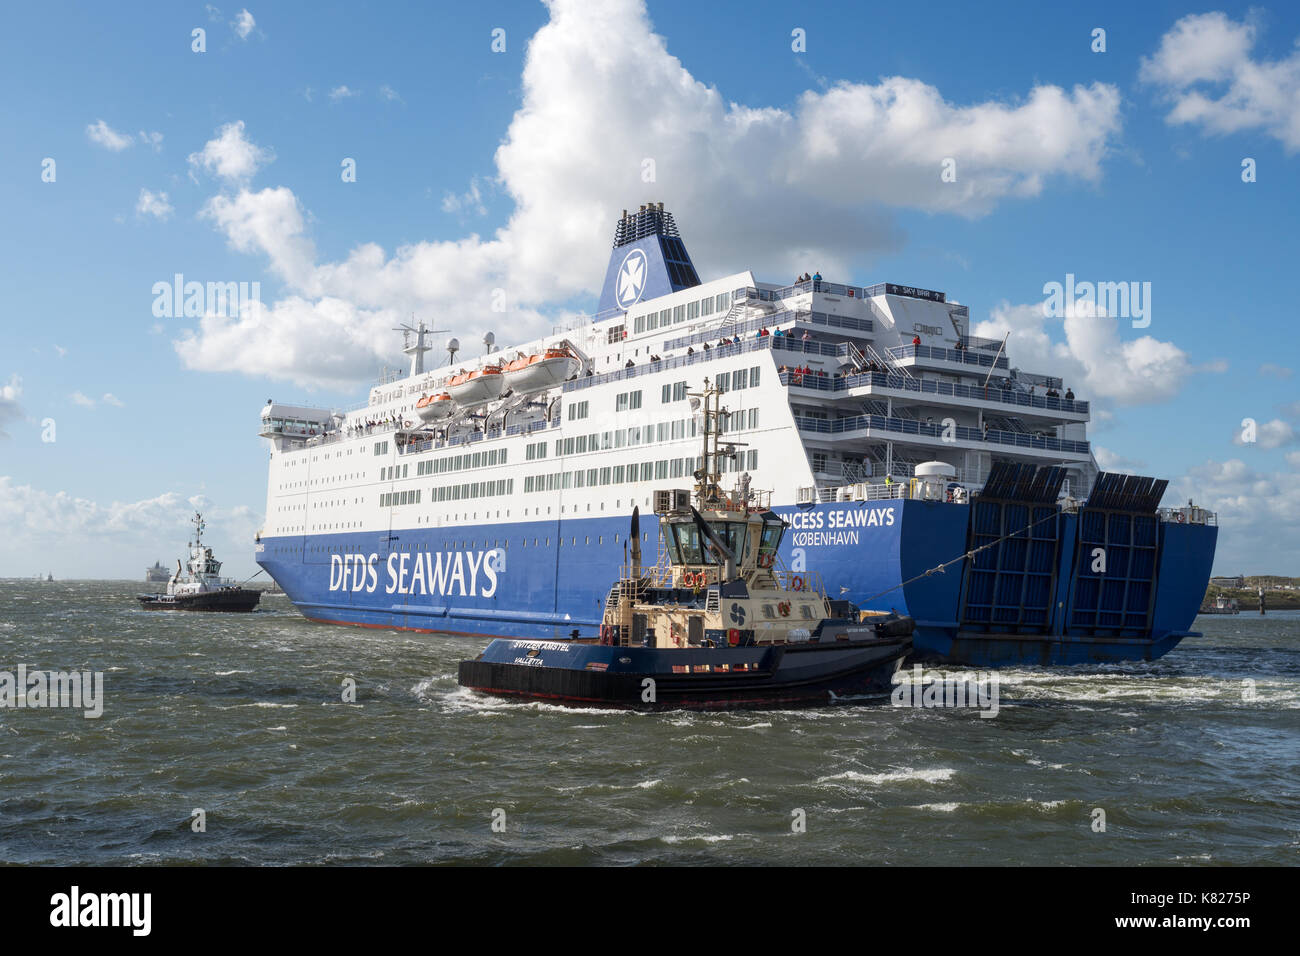 DFDS north sea ferry Princess Seaways being assisted into Ijmuiden port by tugs due to strong onshore winds, Holland, Europe - Stock Image